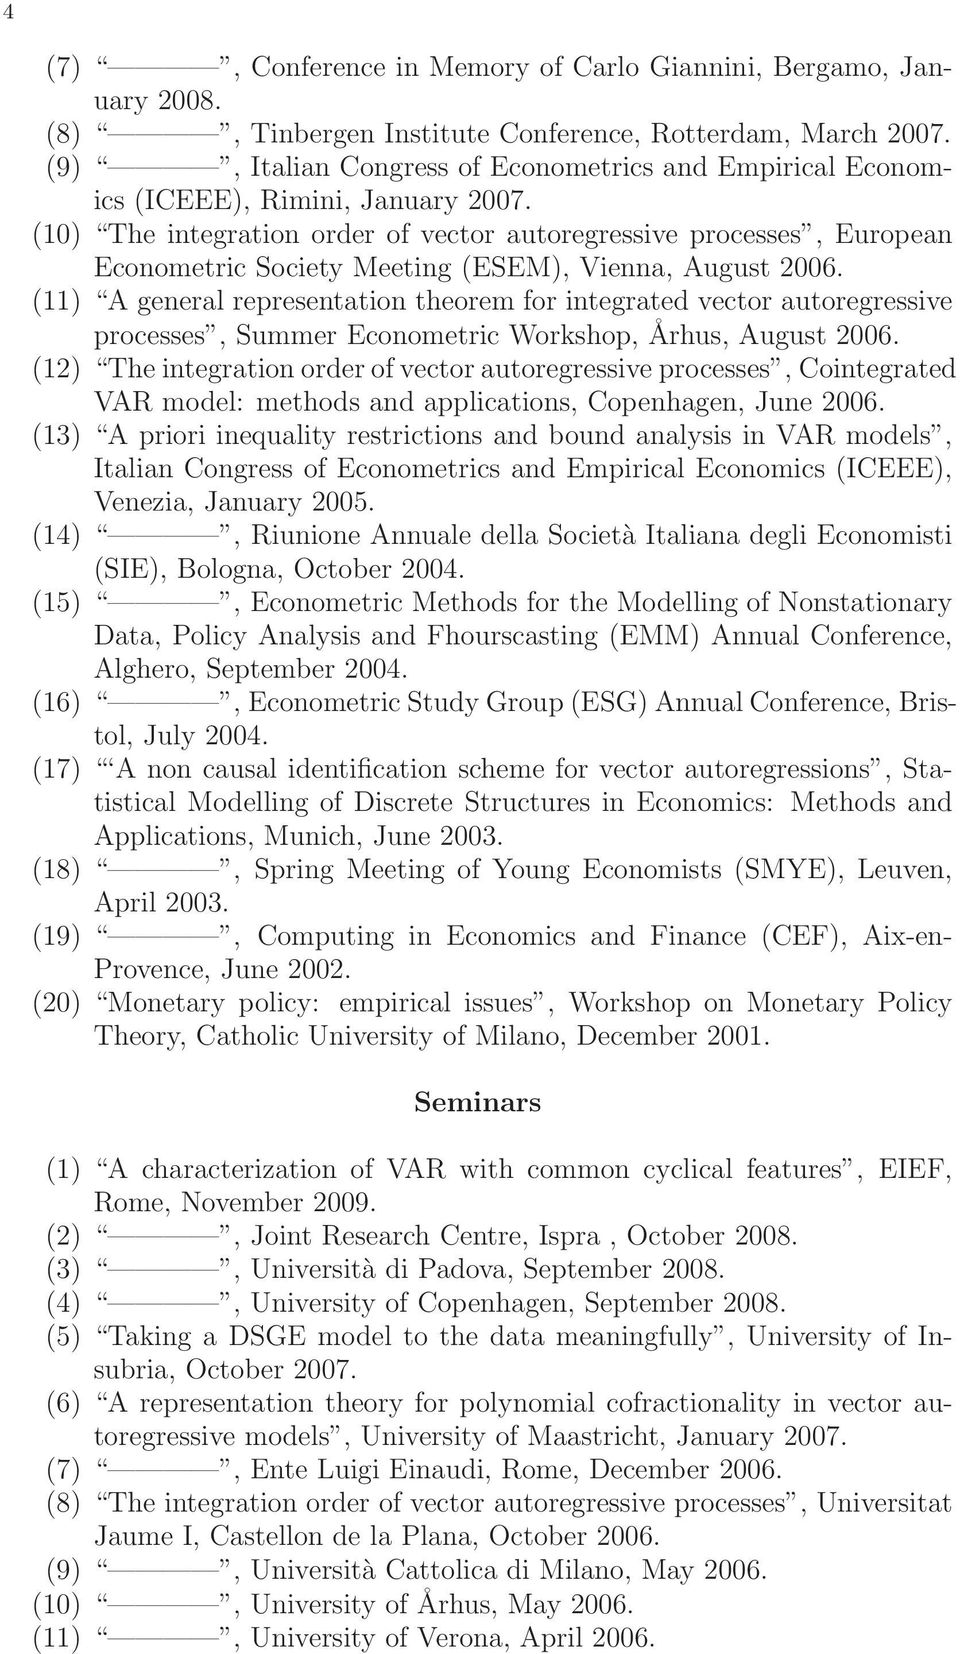 (10) The integration order of vector autoregressive processes, European Econometric Society Meeting (ESEM), Vienna, August 2006.